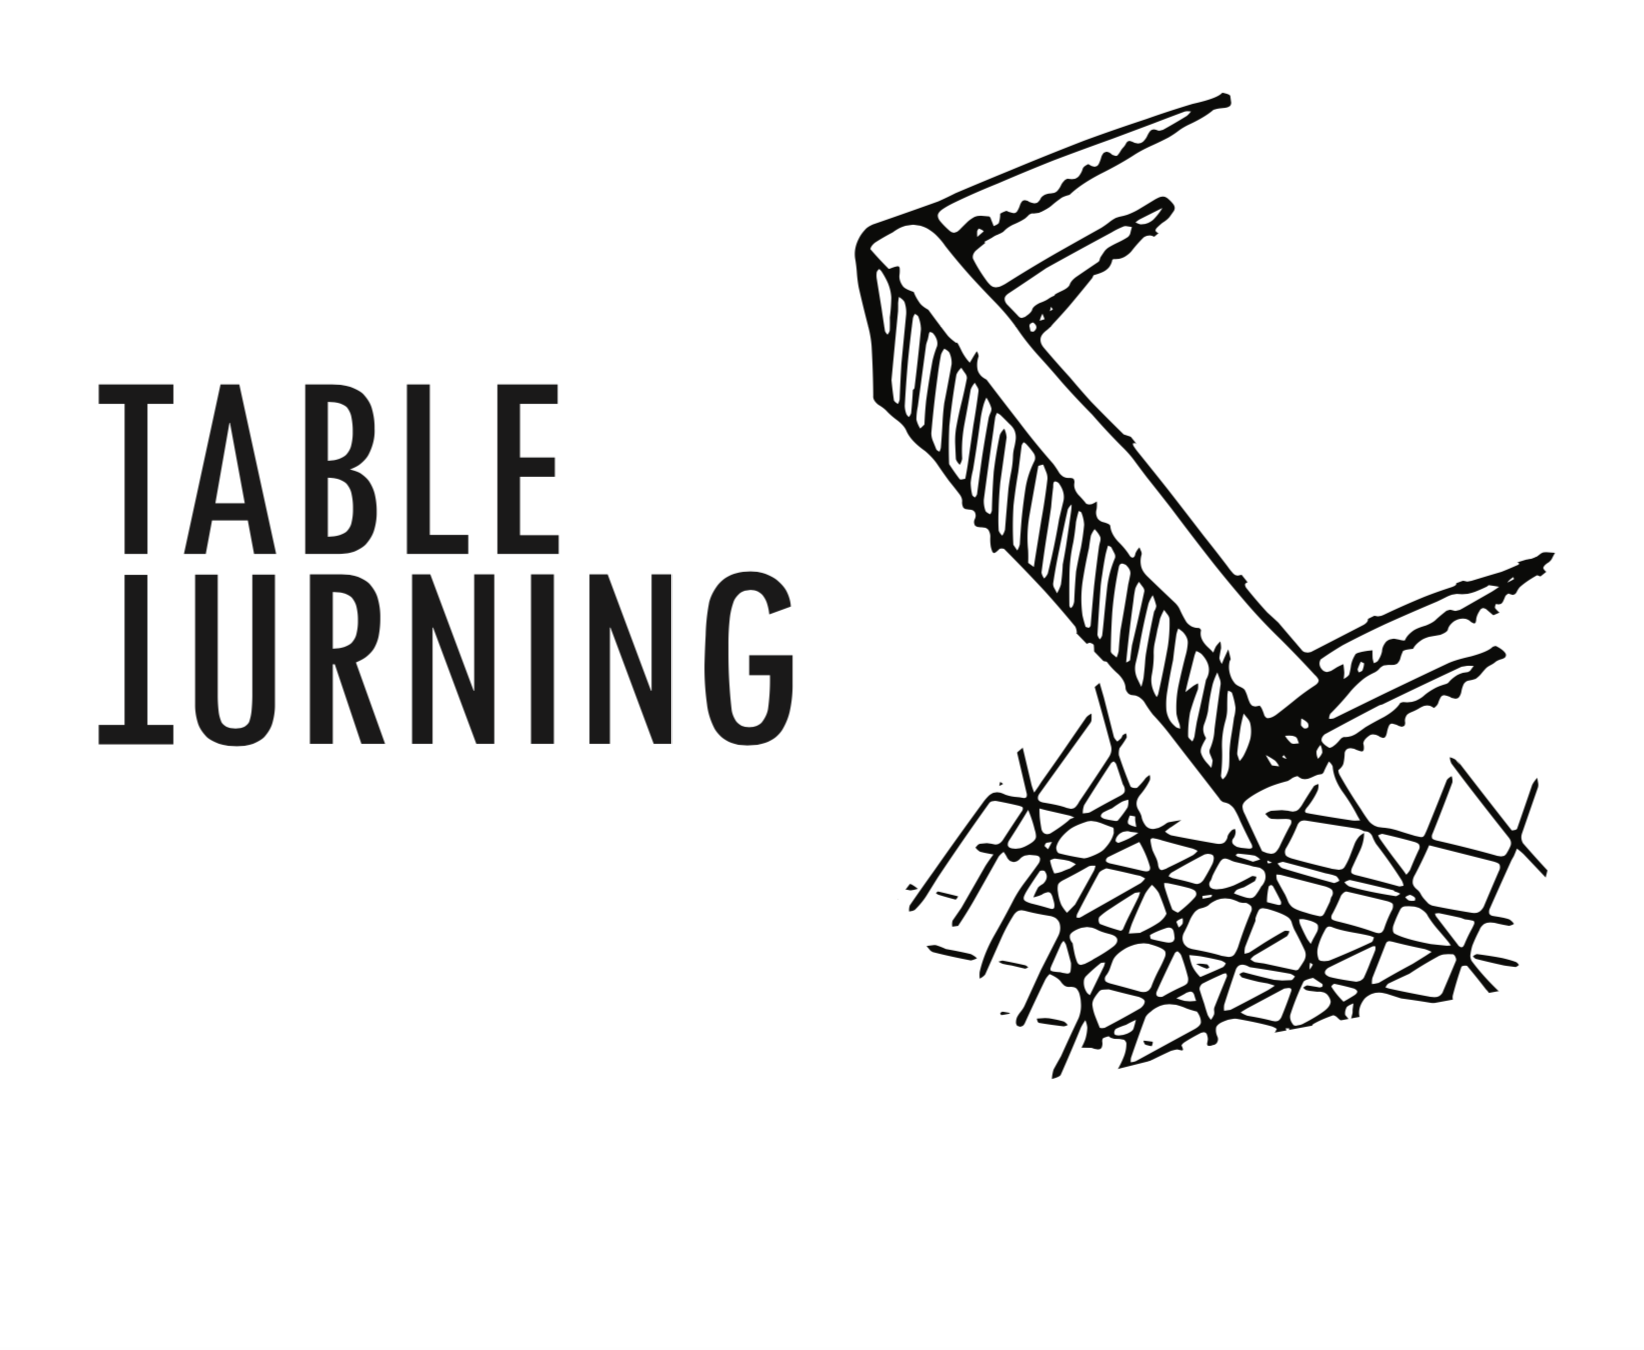 Table Turning Logo Zoom In